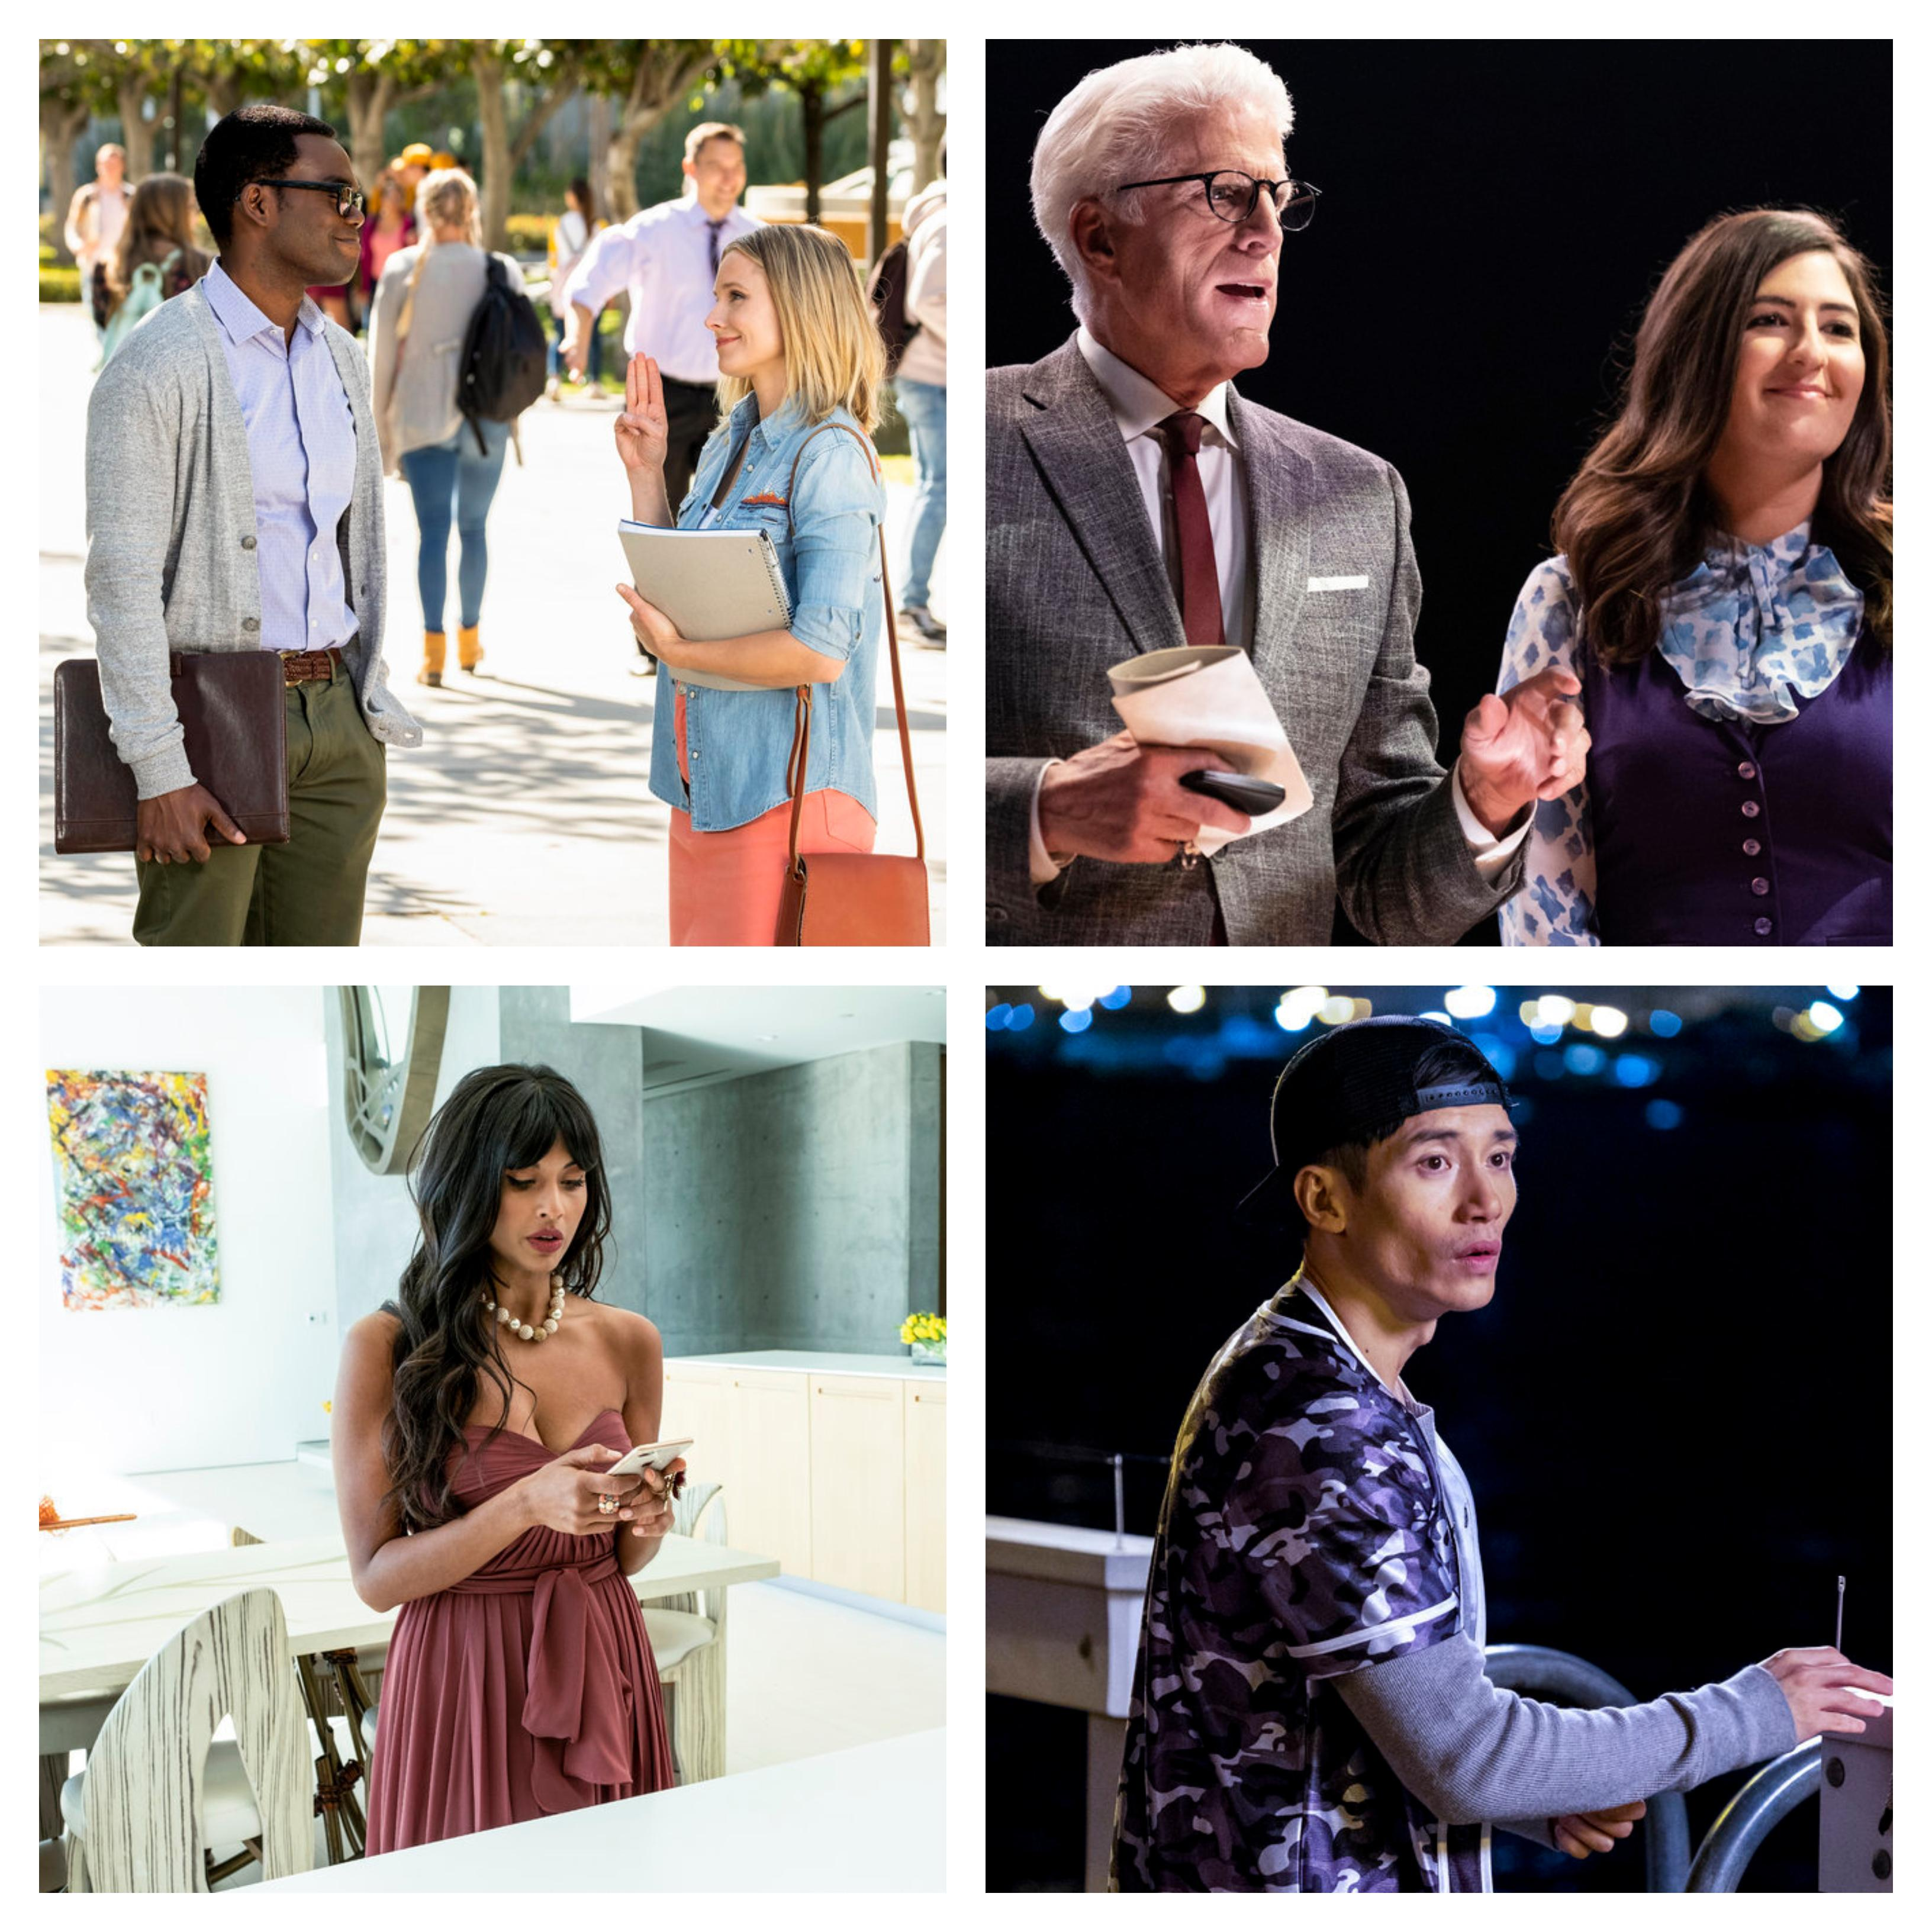 The Good Place' Season 3 Spoilers: Episode 1 Synopsis And Sneak-Peek